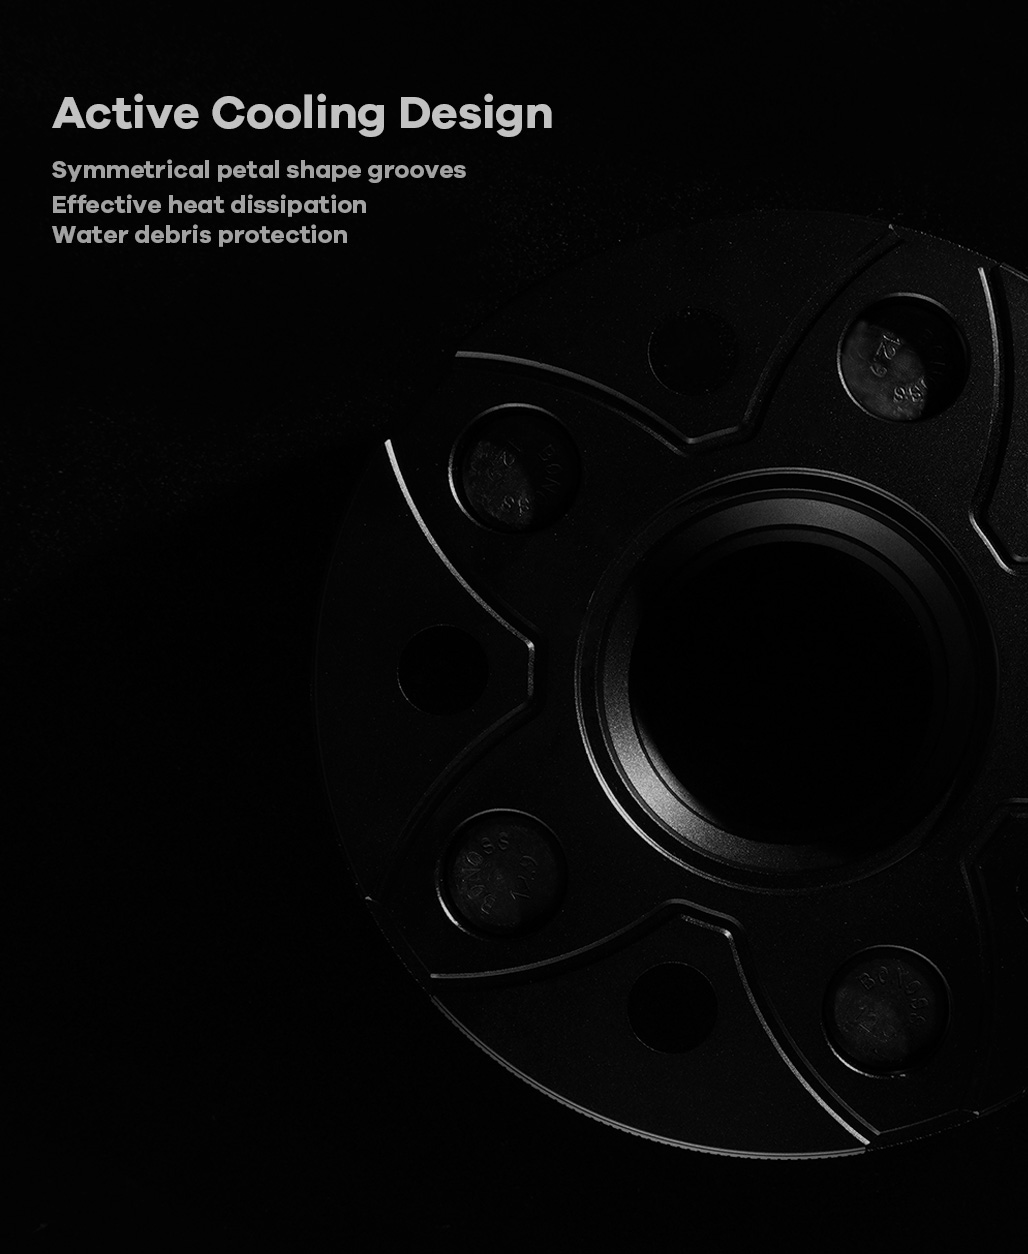 BONOSS Forged Active Cooling Wheel Spacers Hubcentric PCD5x114.3 CB60.1 AL6061-T6